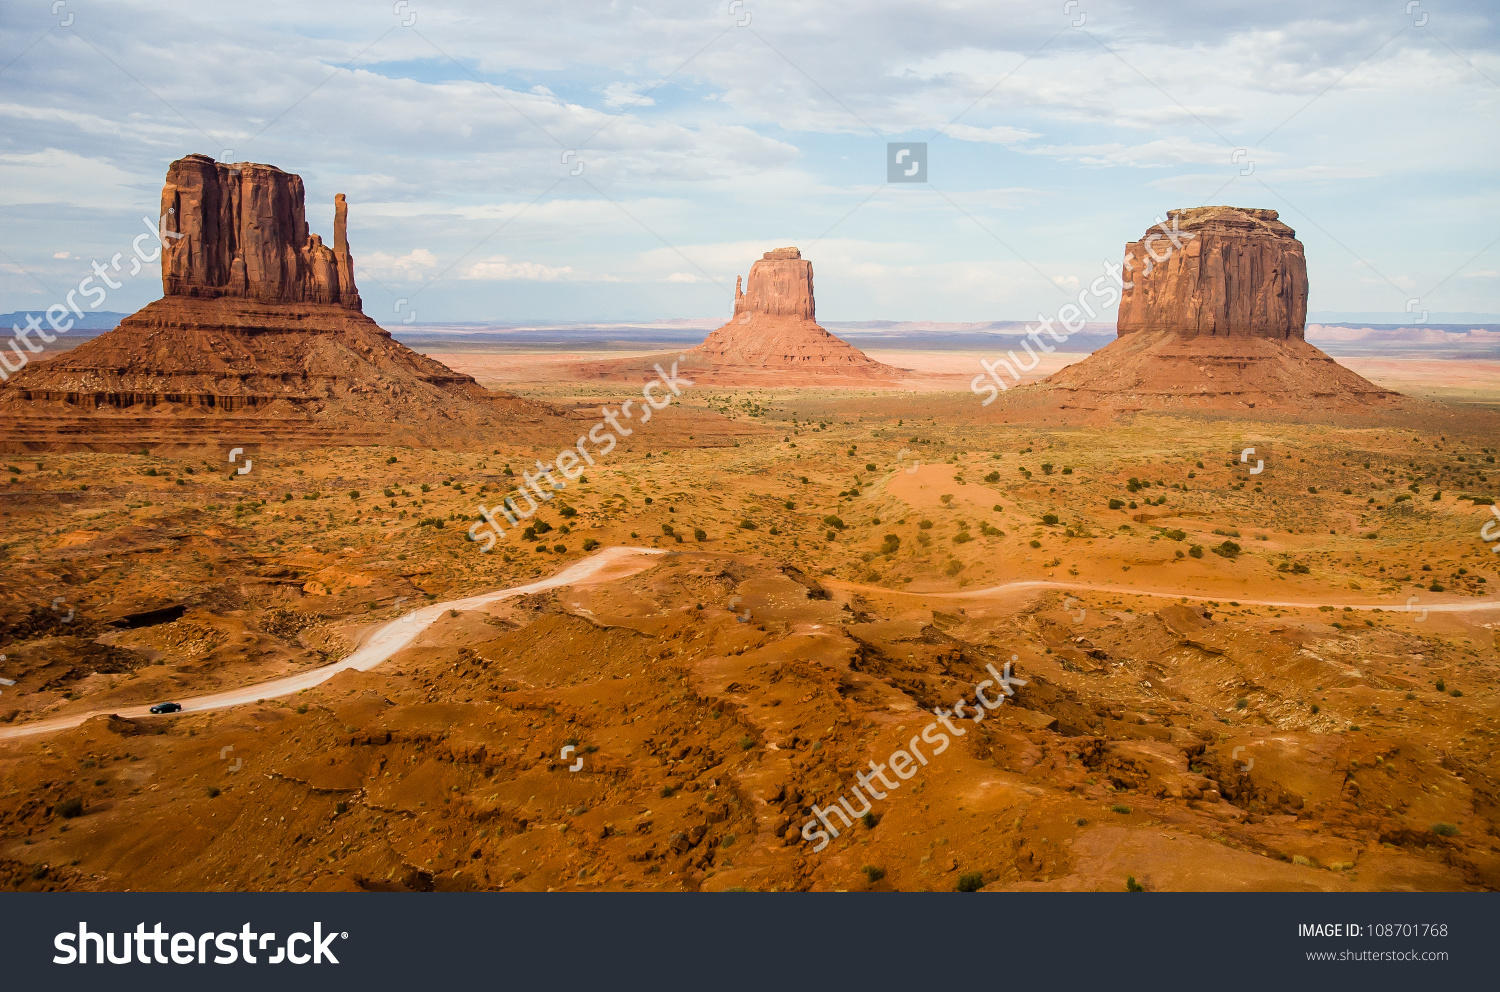 The Famous Buttes Of Monument Valley Navajo National Park, Utah.